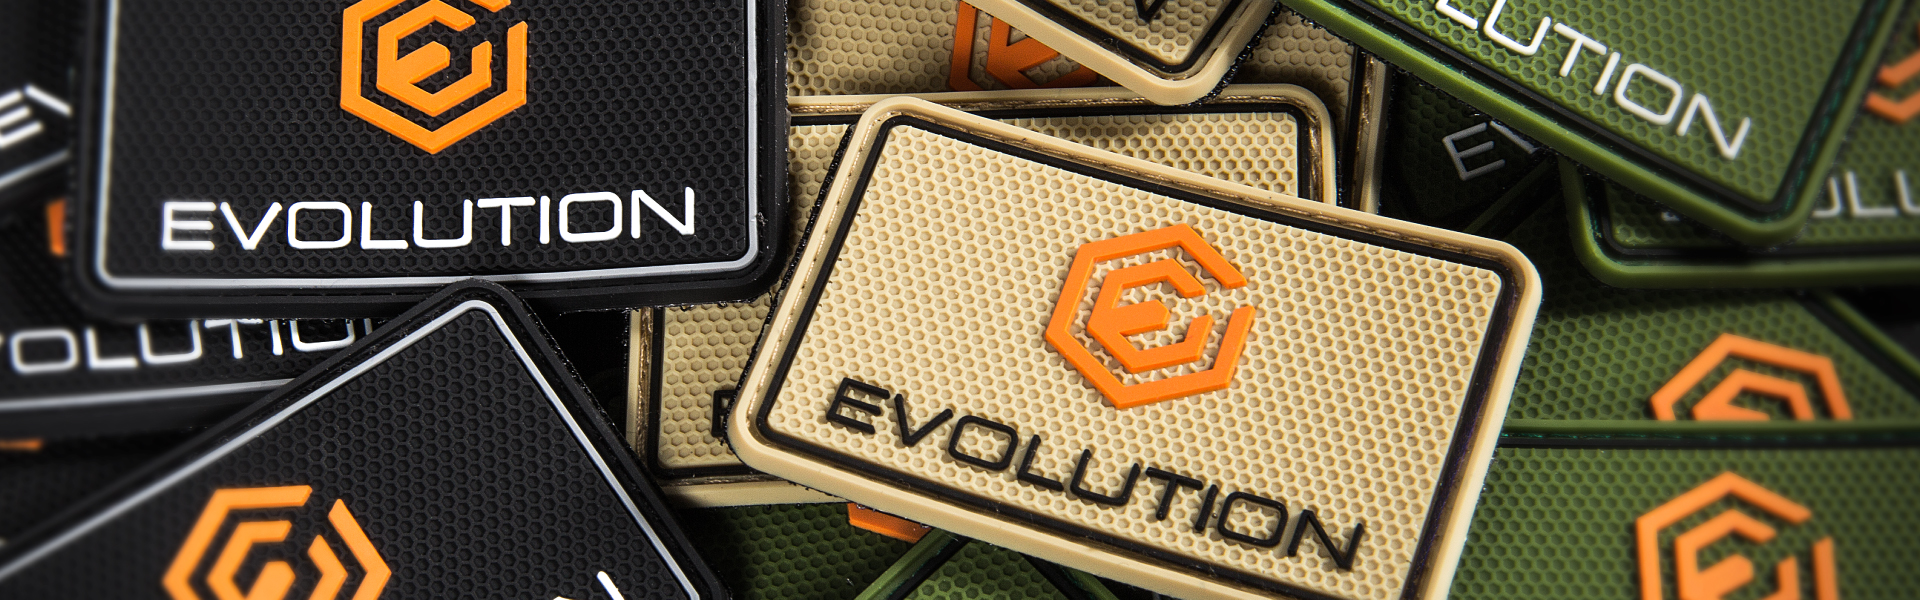 Evolution hats, patches and stickers